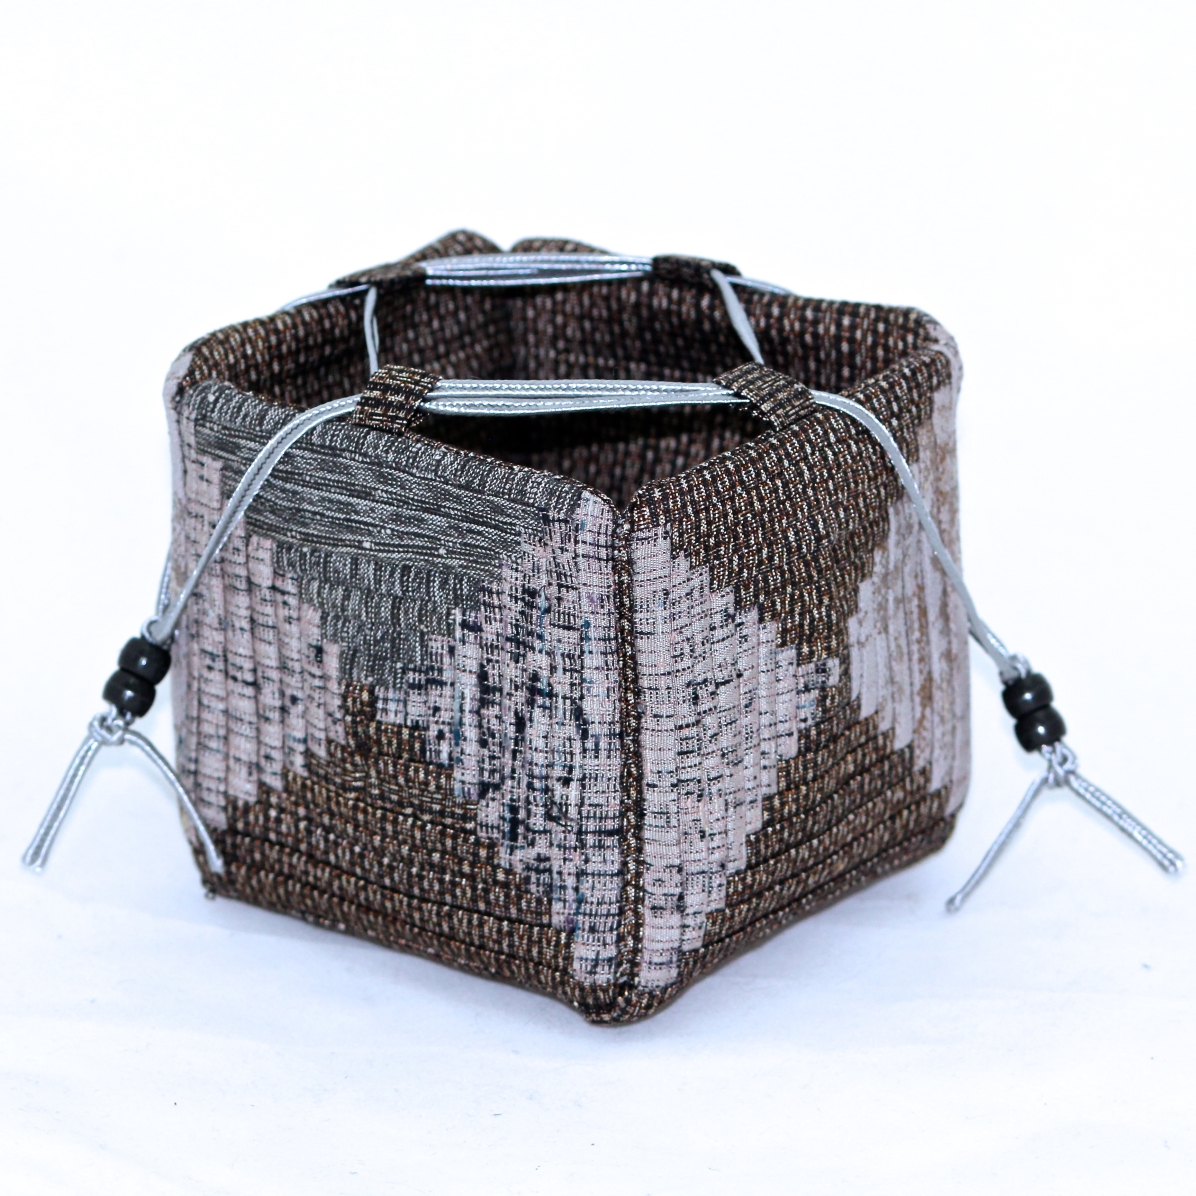 Trinket and tool bags made with recycled fabric